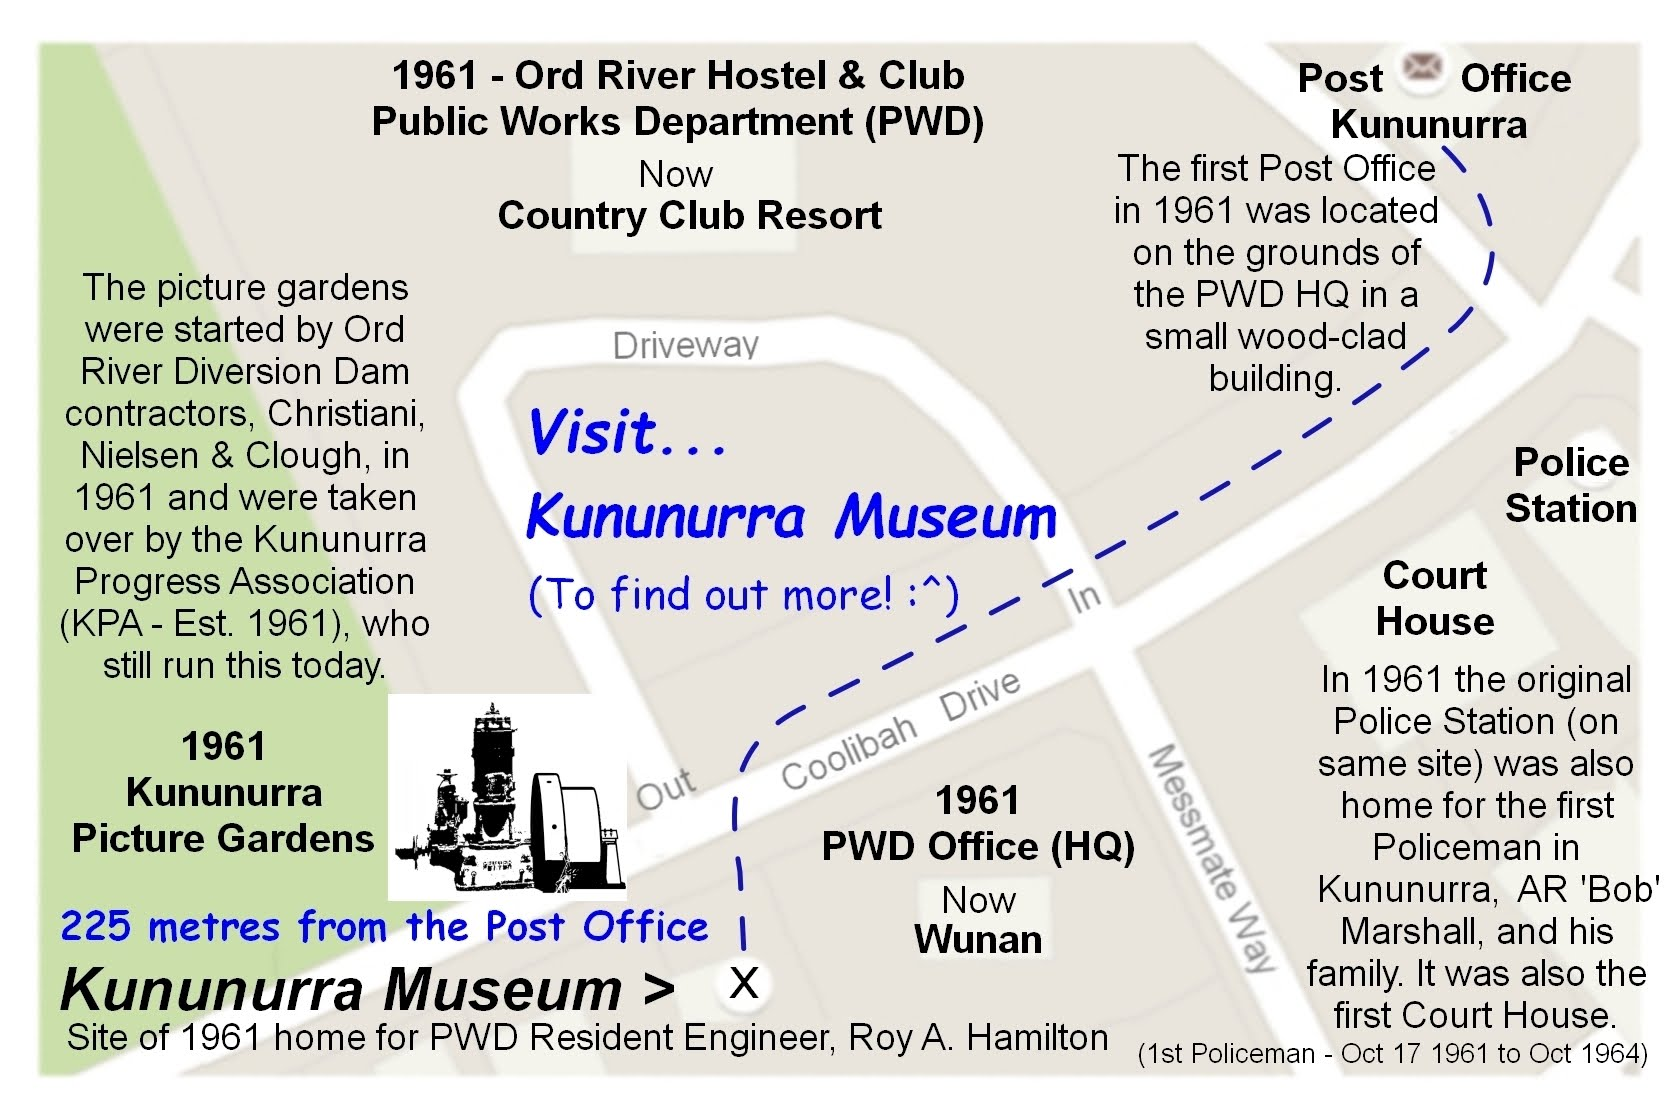 Map showing path from Post Office to the Kununurra Museum (225m - with history ;^)